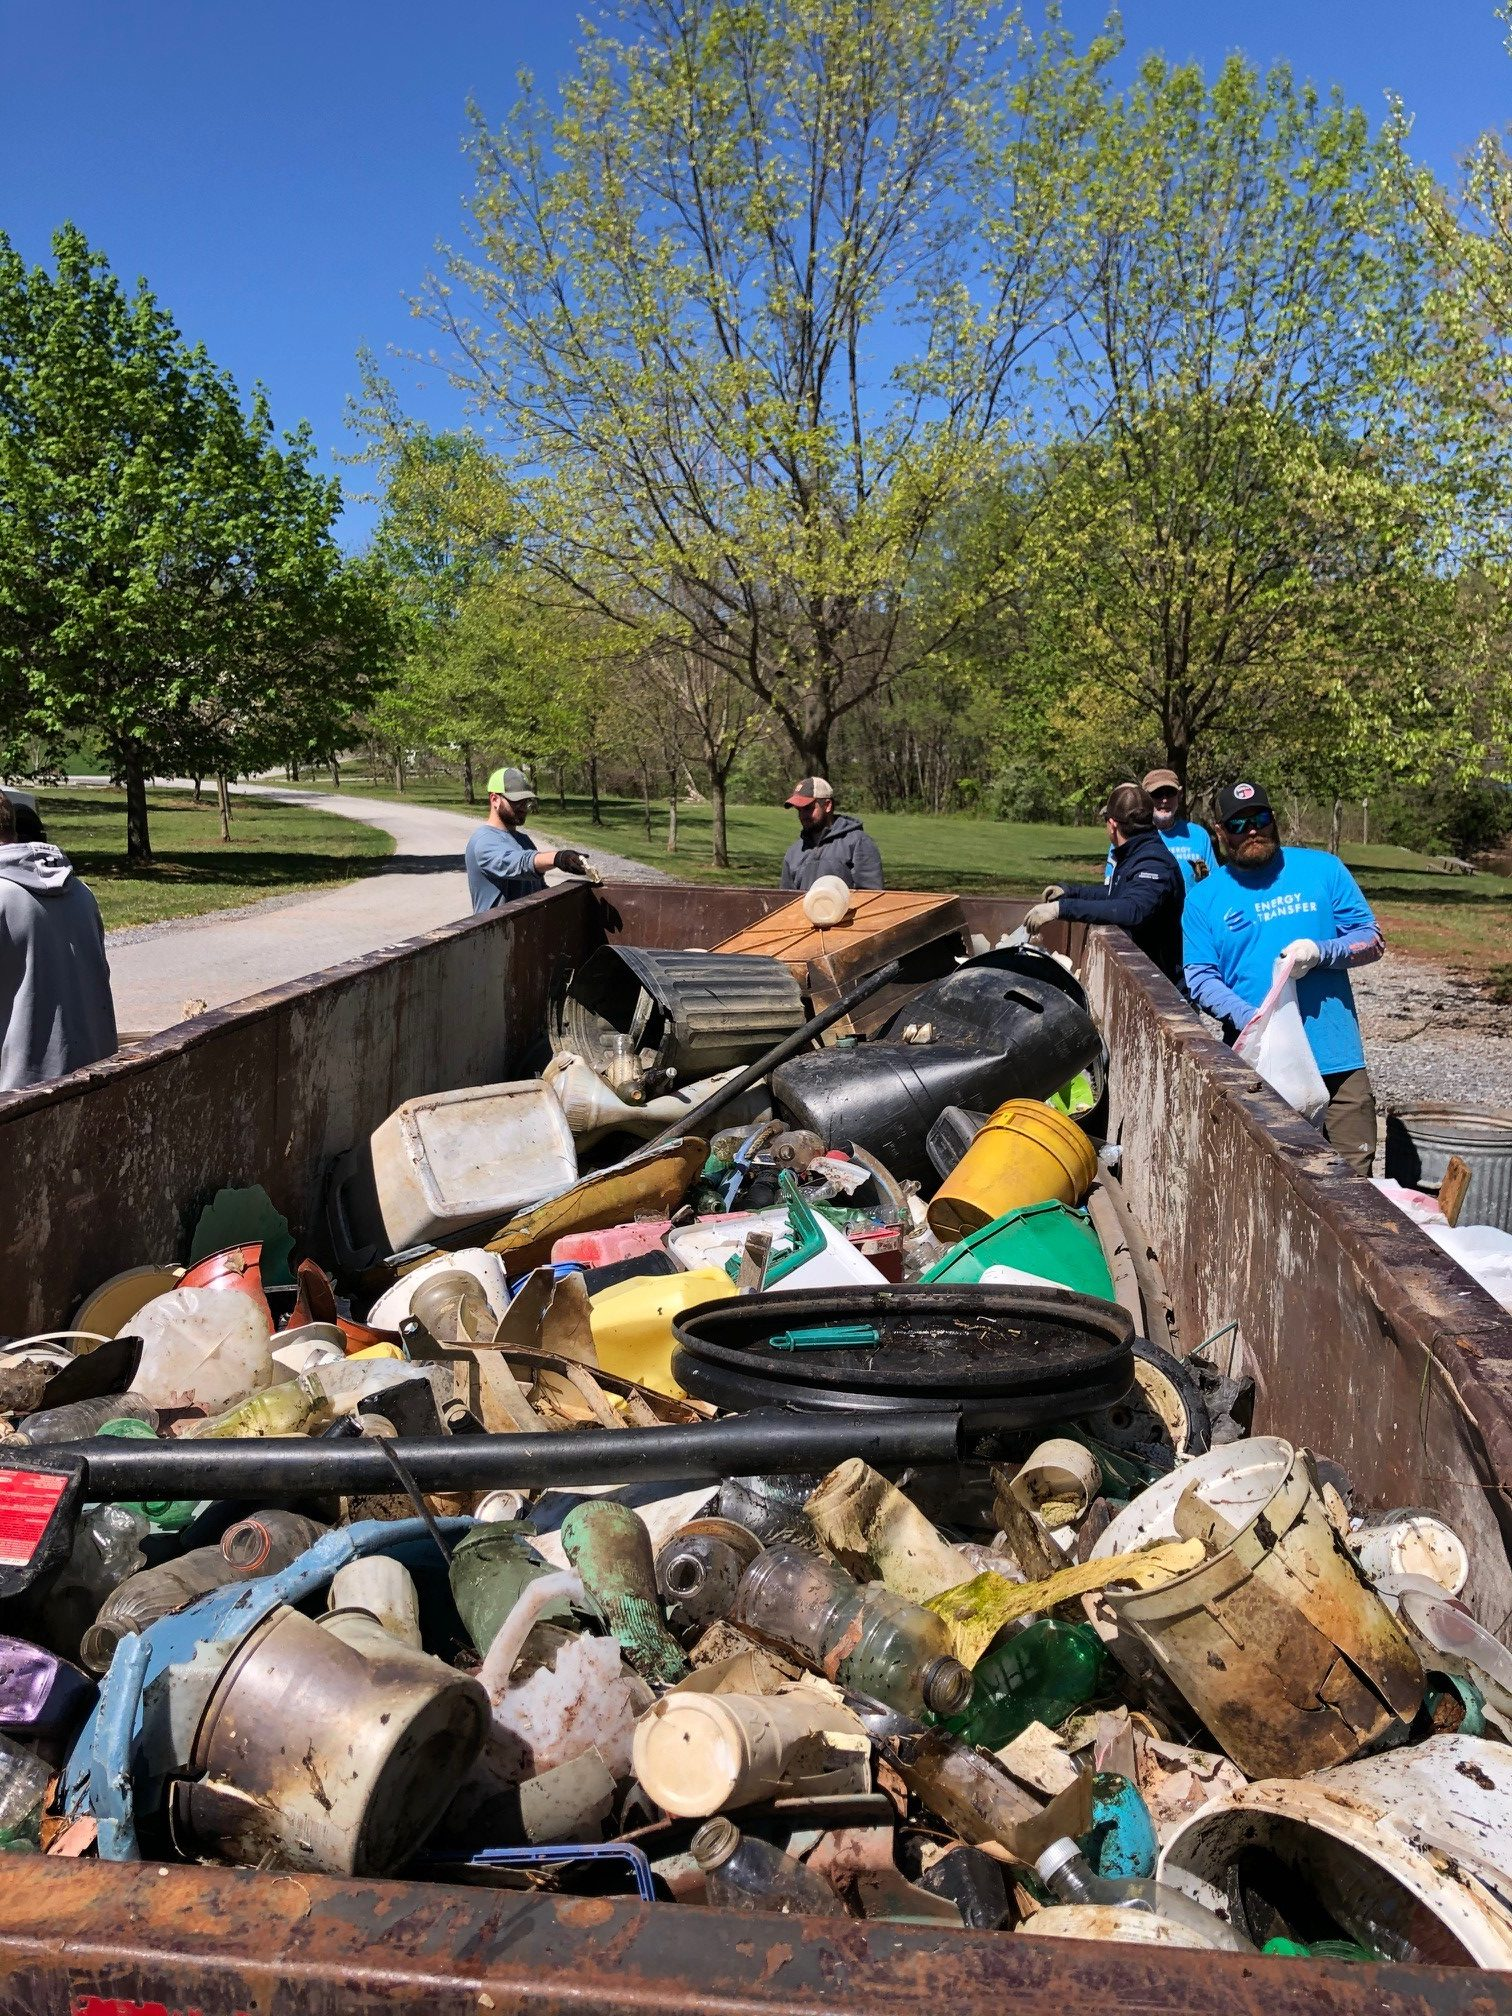 RaystownCleanup8 rotated - Celebrating Earth Day in Pennsylvania